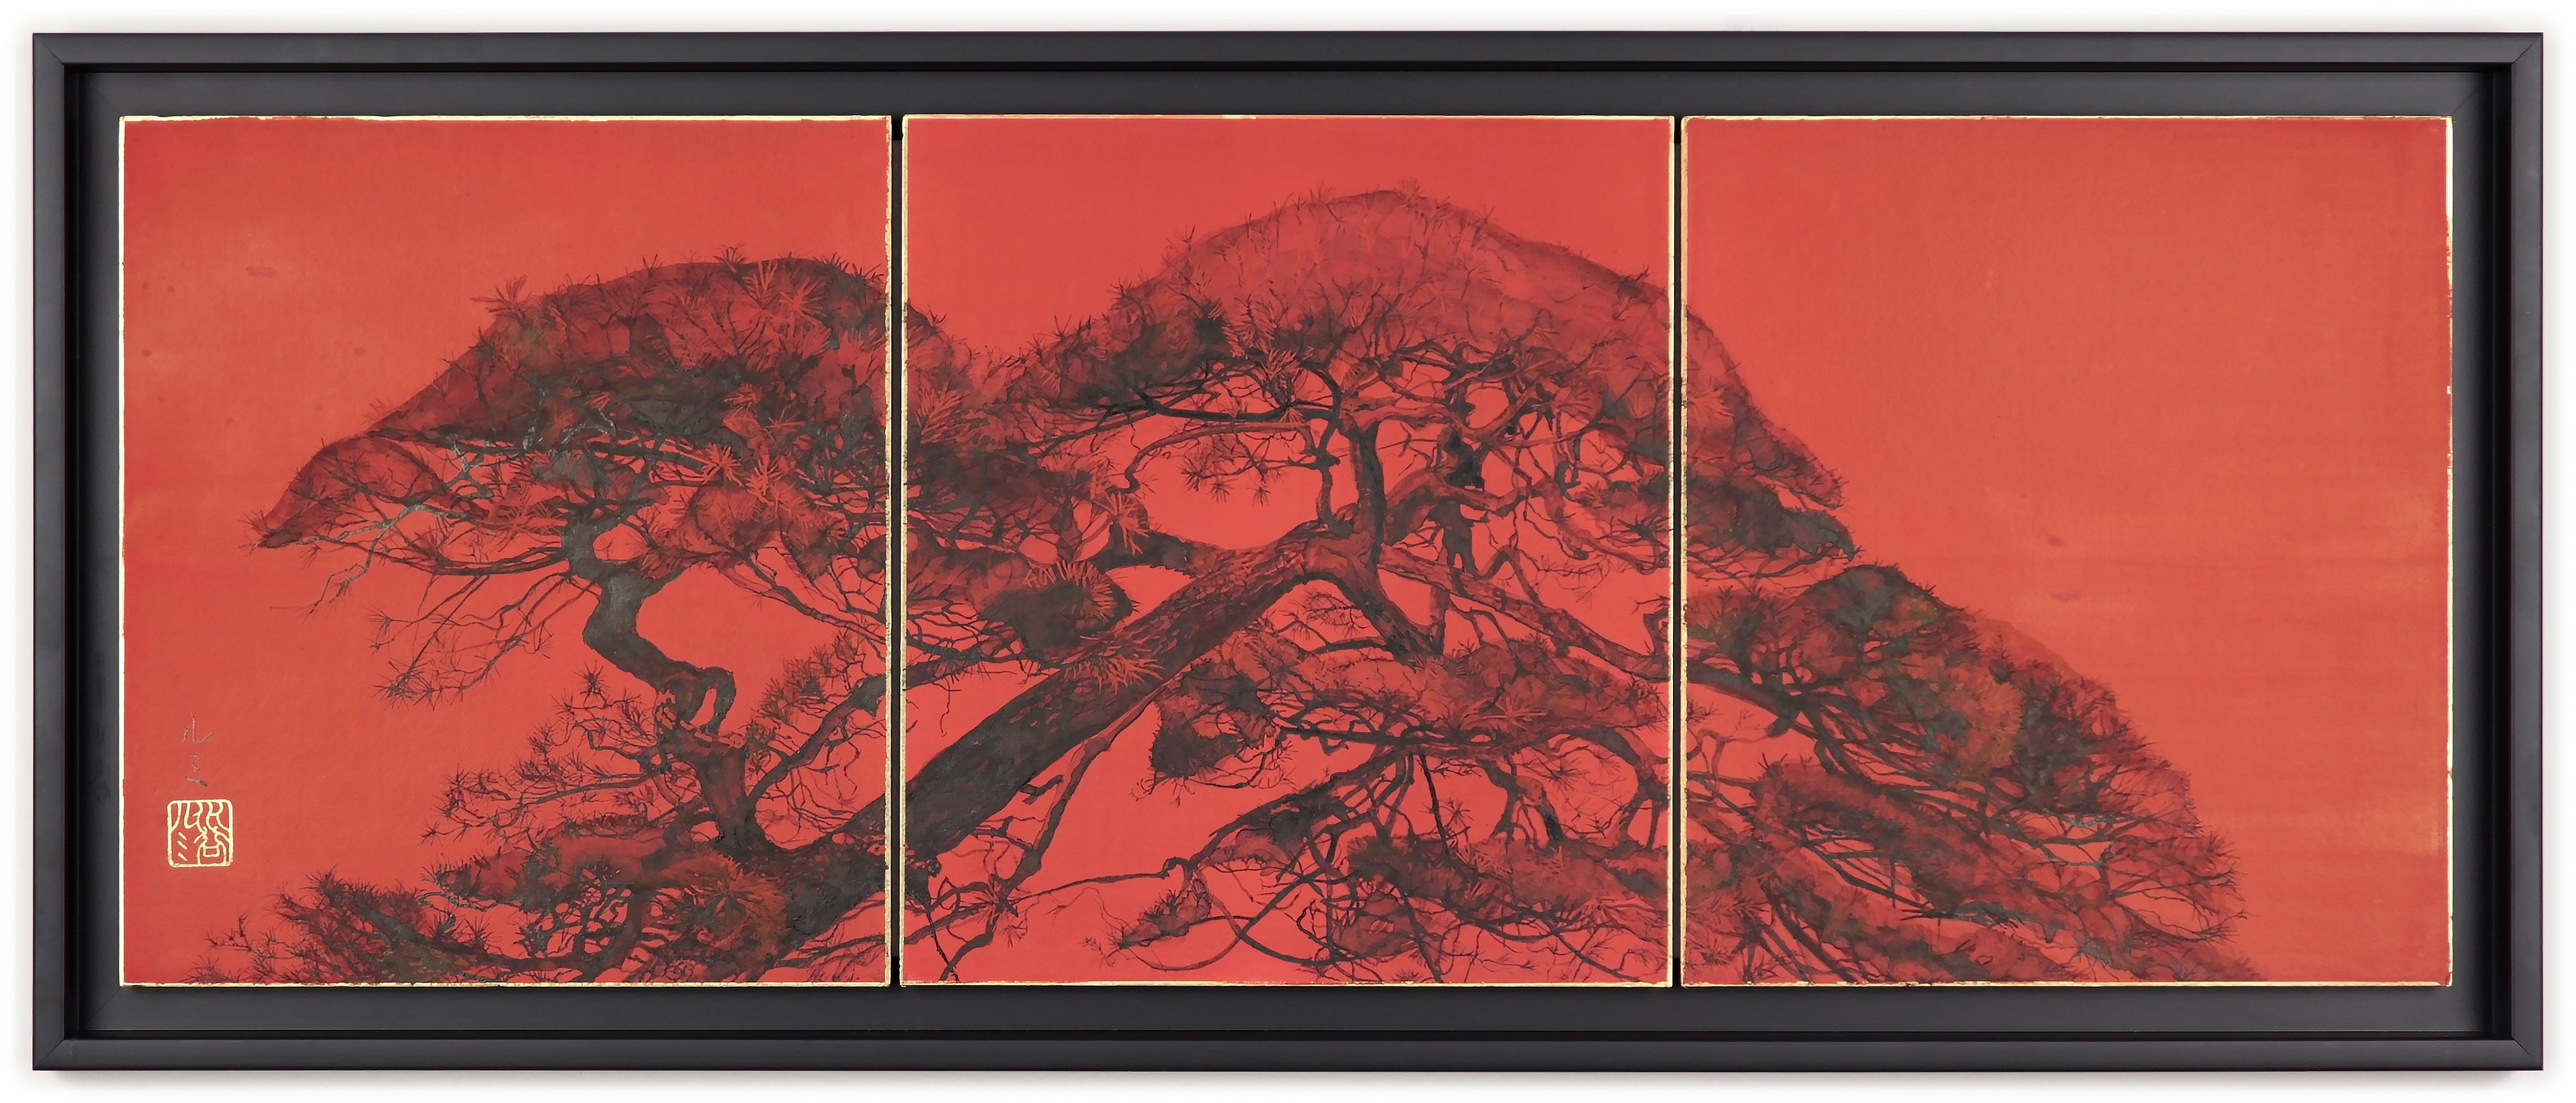 Tilted Pine II by L. Mizutani - Japanese-style painting, red triptych, landscape